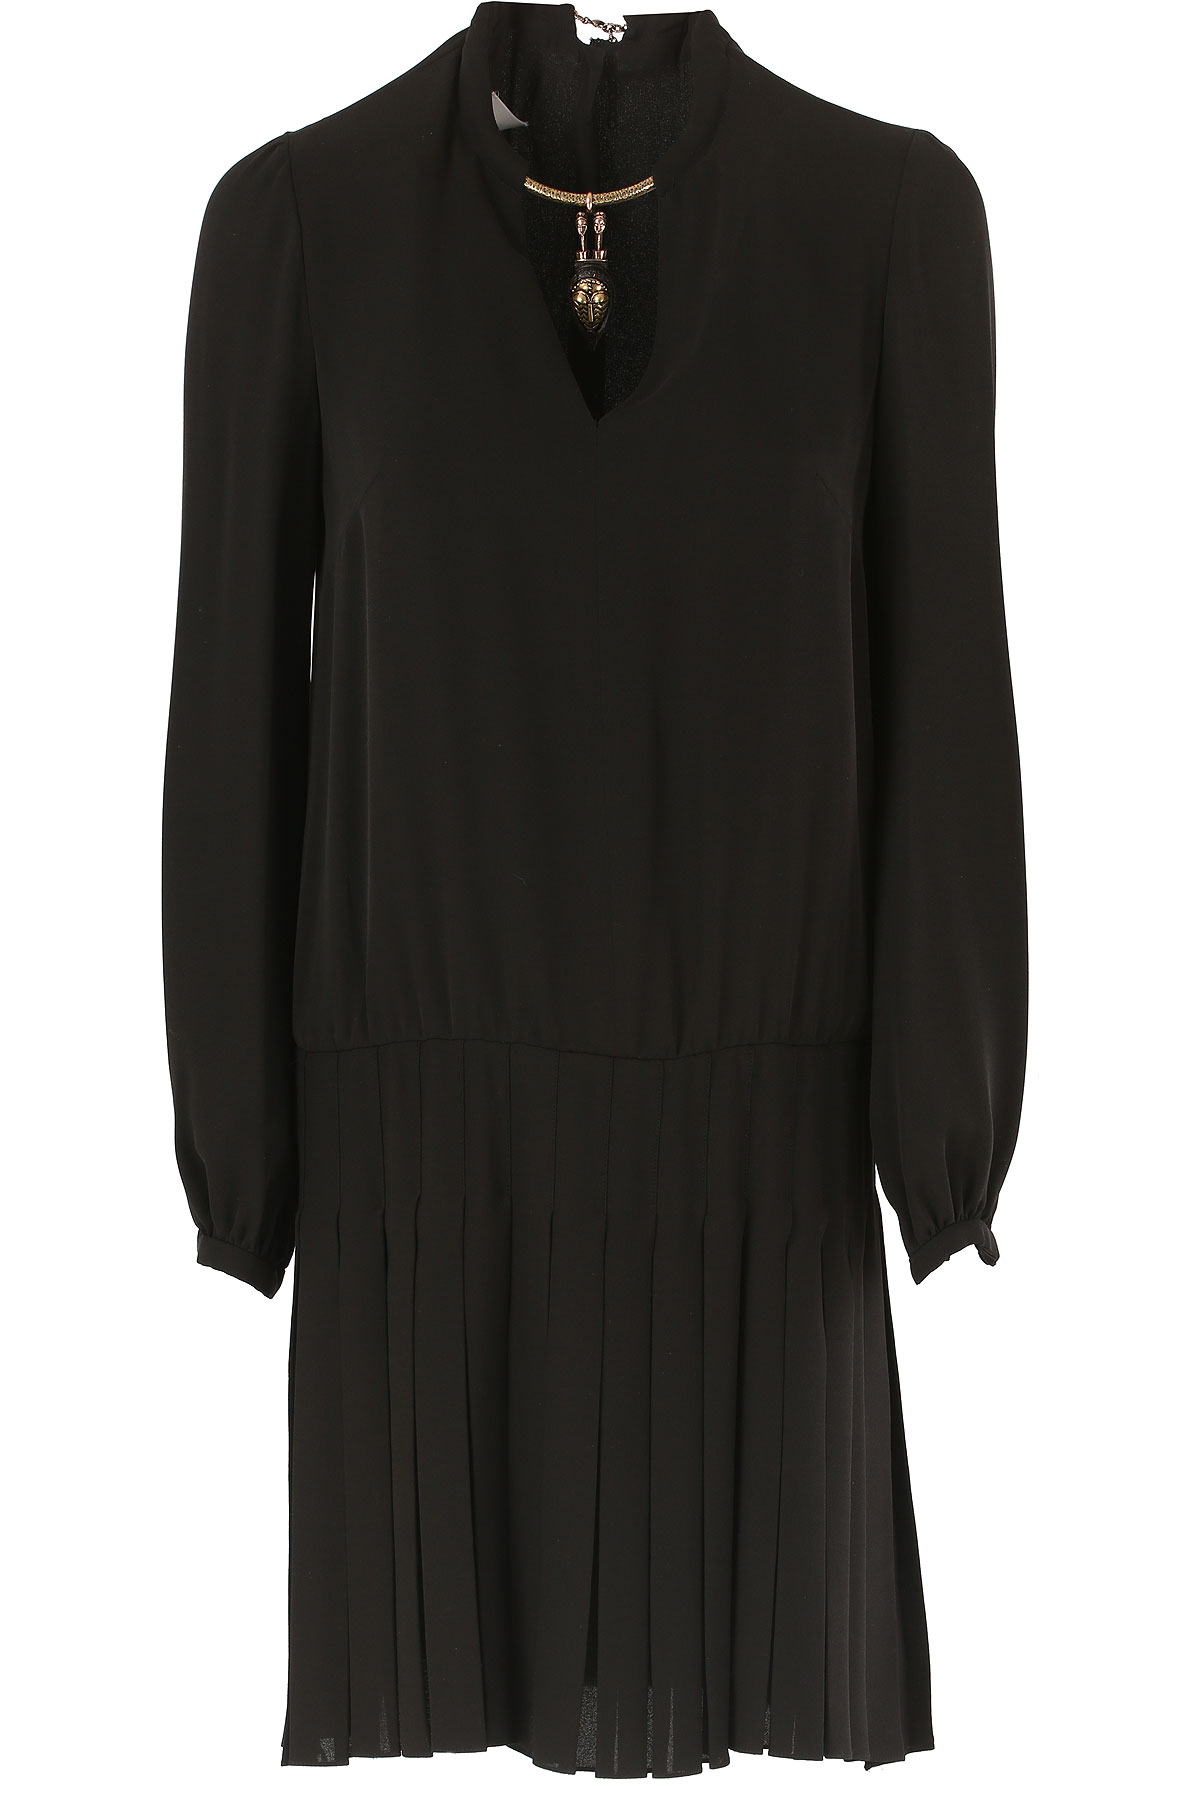 Valentino Dress for Women, Evening Cocktail Party On Sale in Outlet, Black, Silk, 2017, 4 6 USA-381640